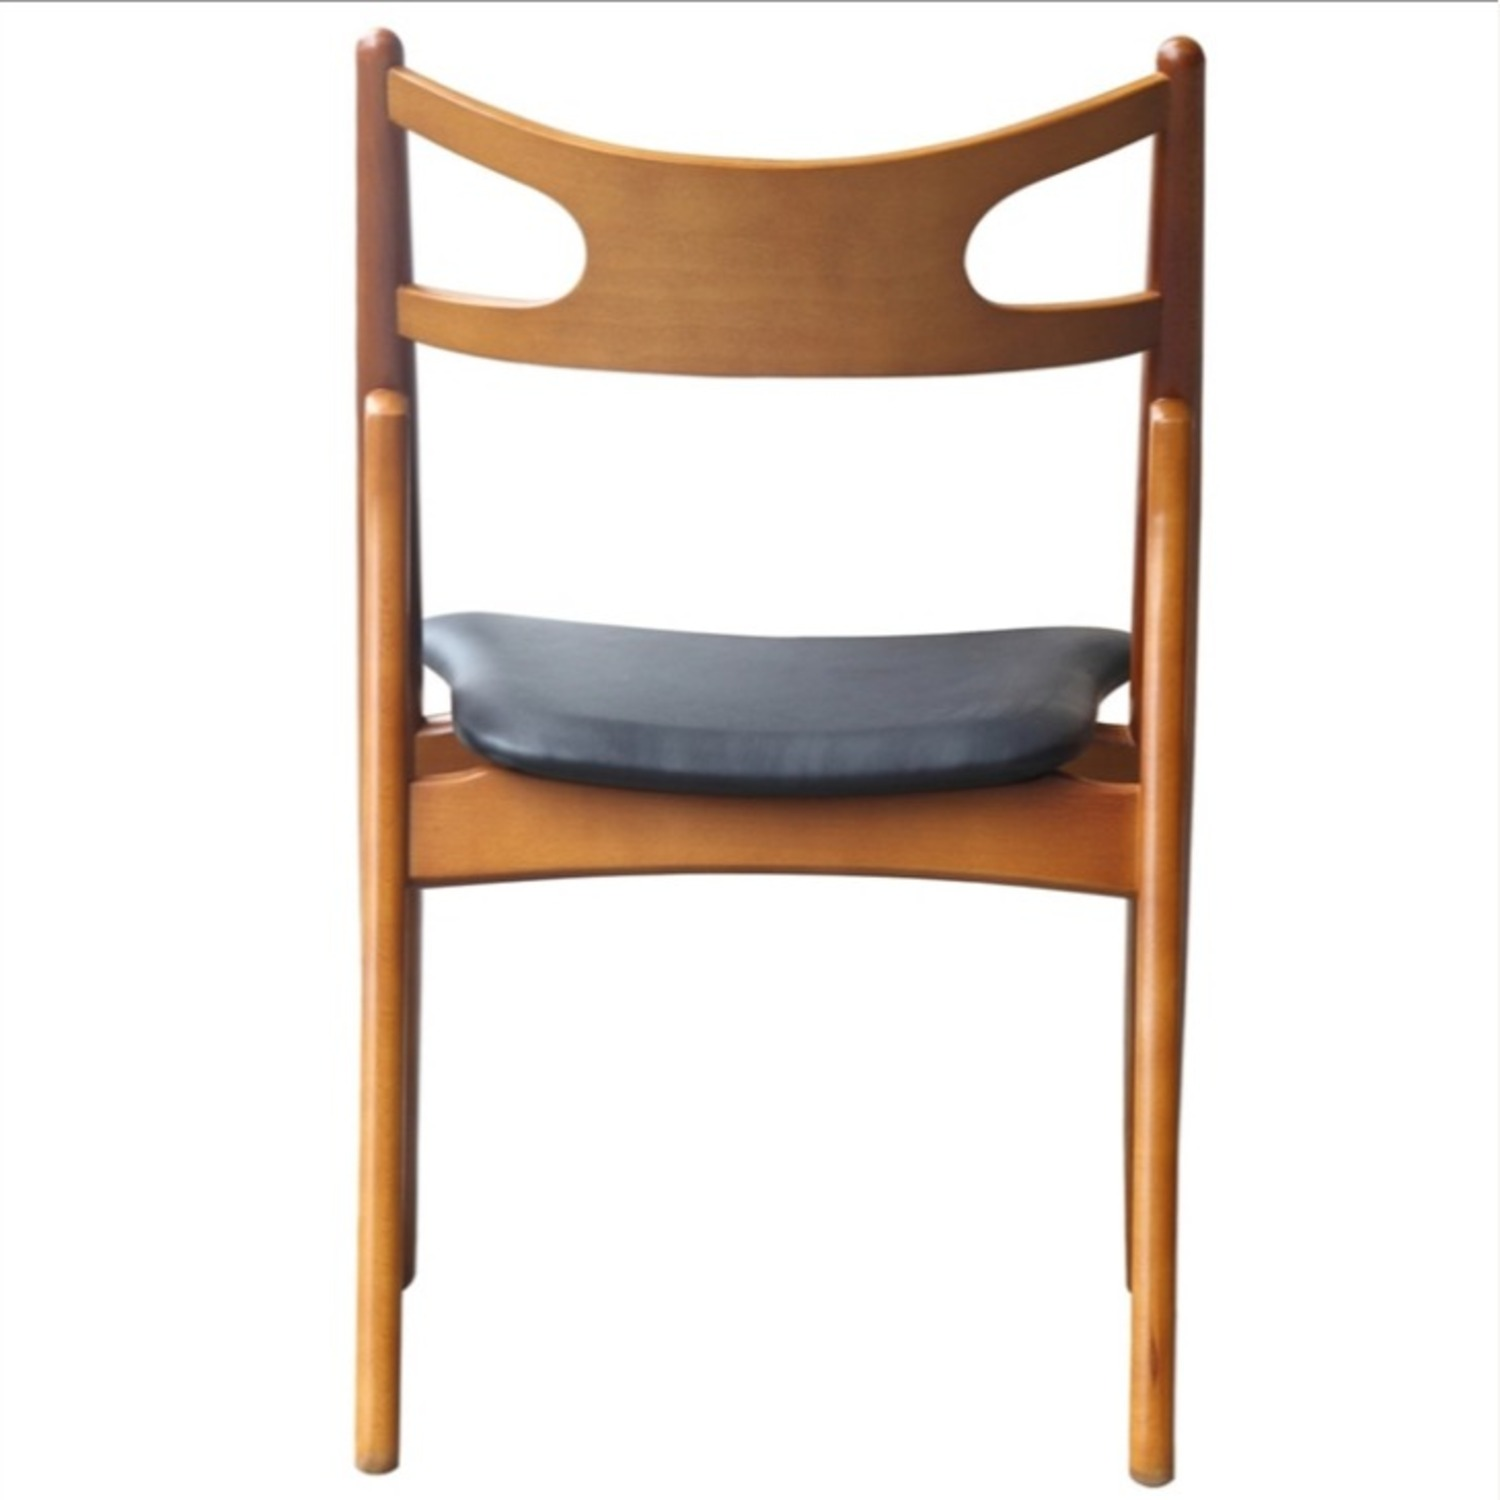 Modern Dining Chair In Walnut Wood Frame - image-4